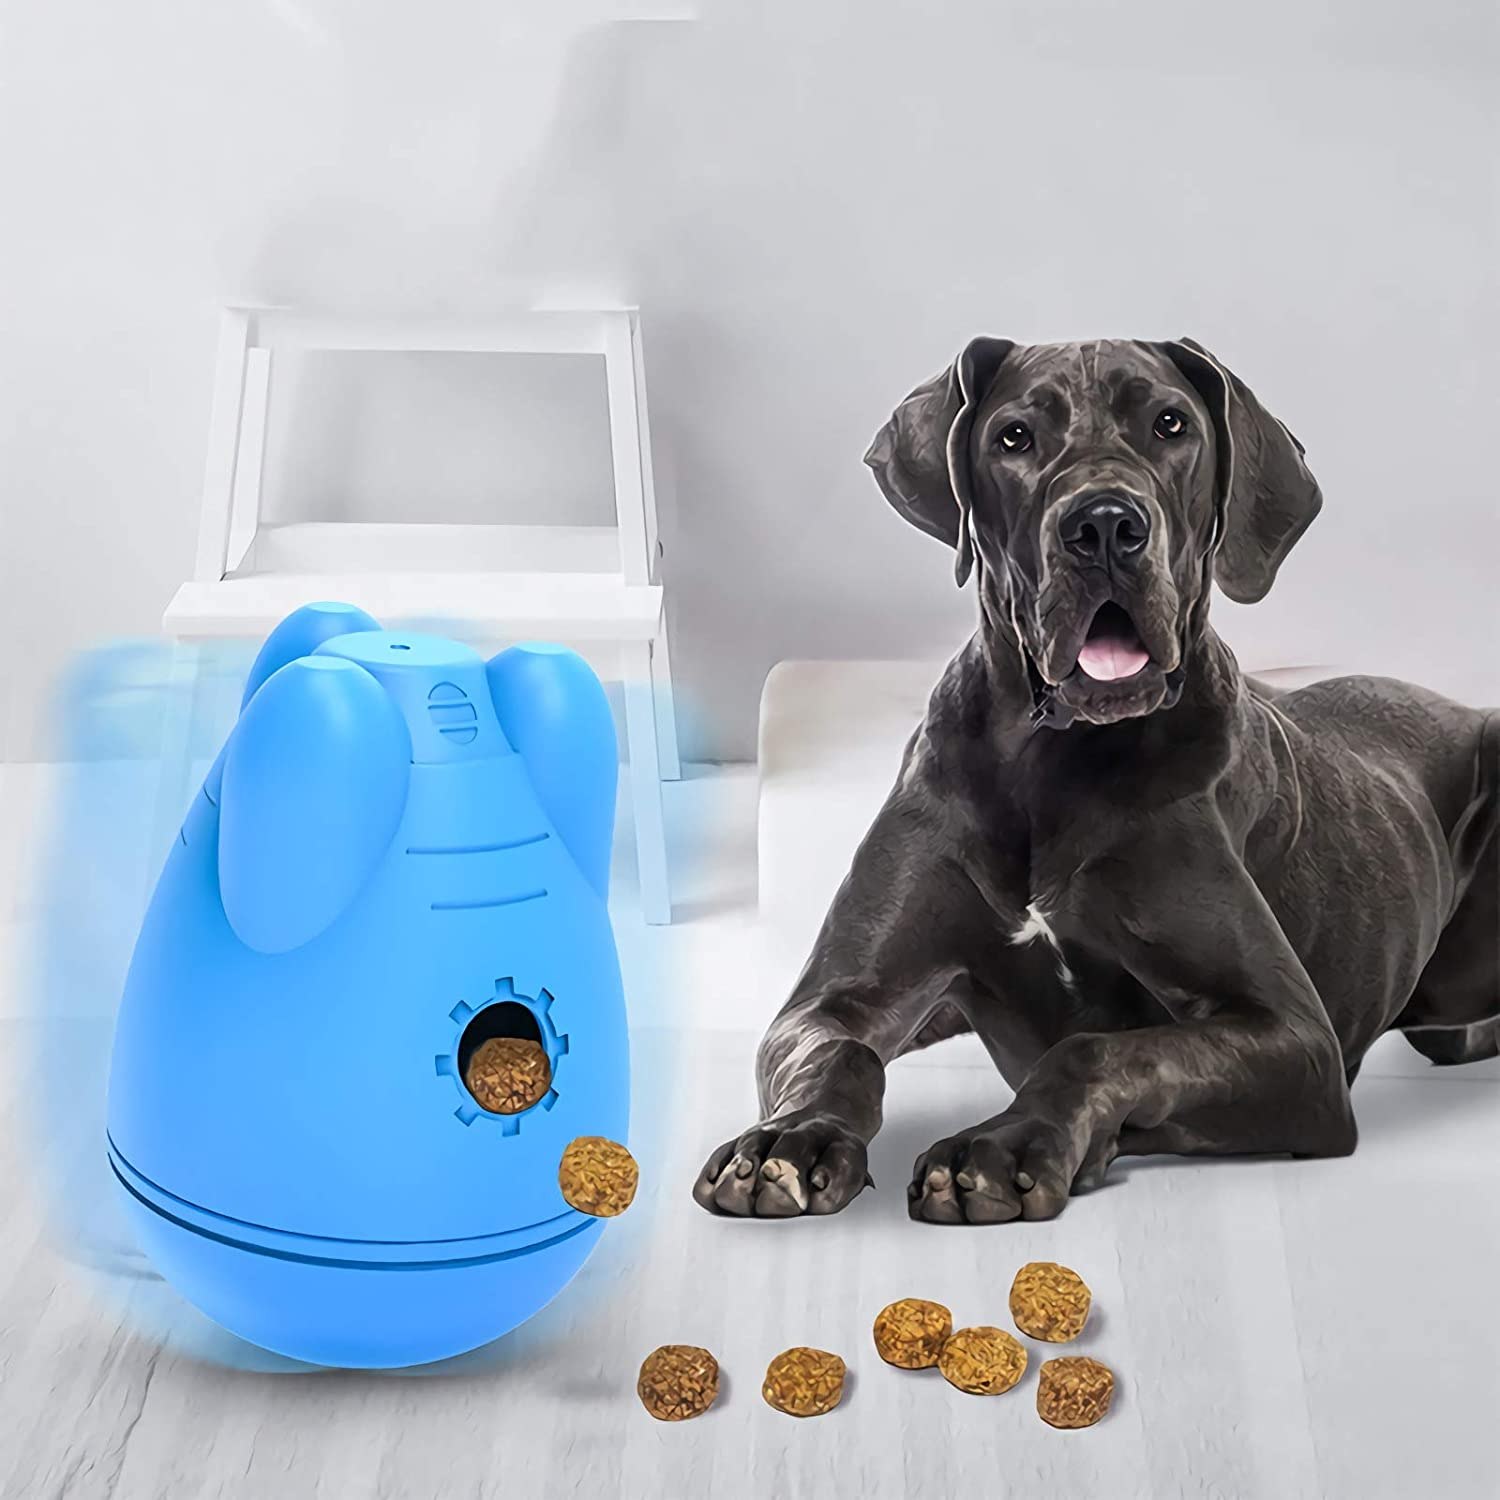 Treat Dispensed Dog Toys , Educational Toys for Large and Medium-sized Dogs, IQ Dog Hospitality Balls, Aggressive Chews, Dog Food Dispenser Toys Strong and Sturdy